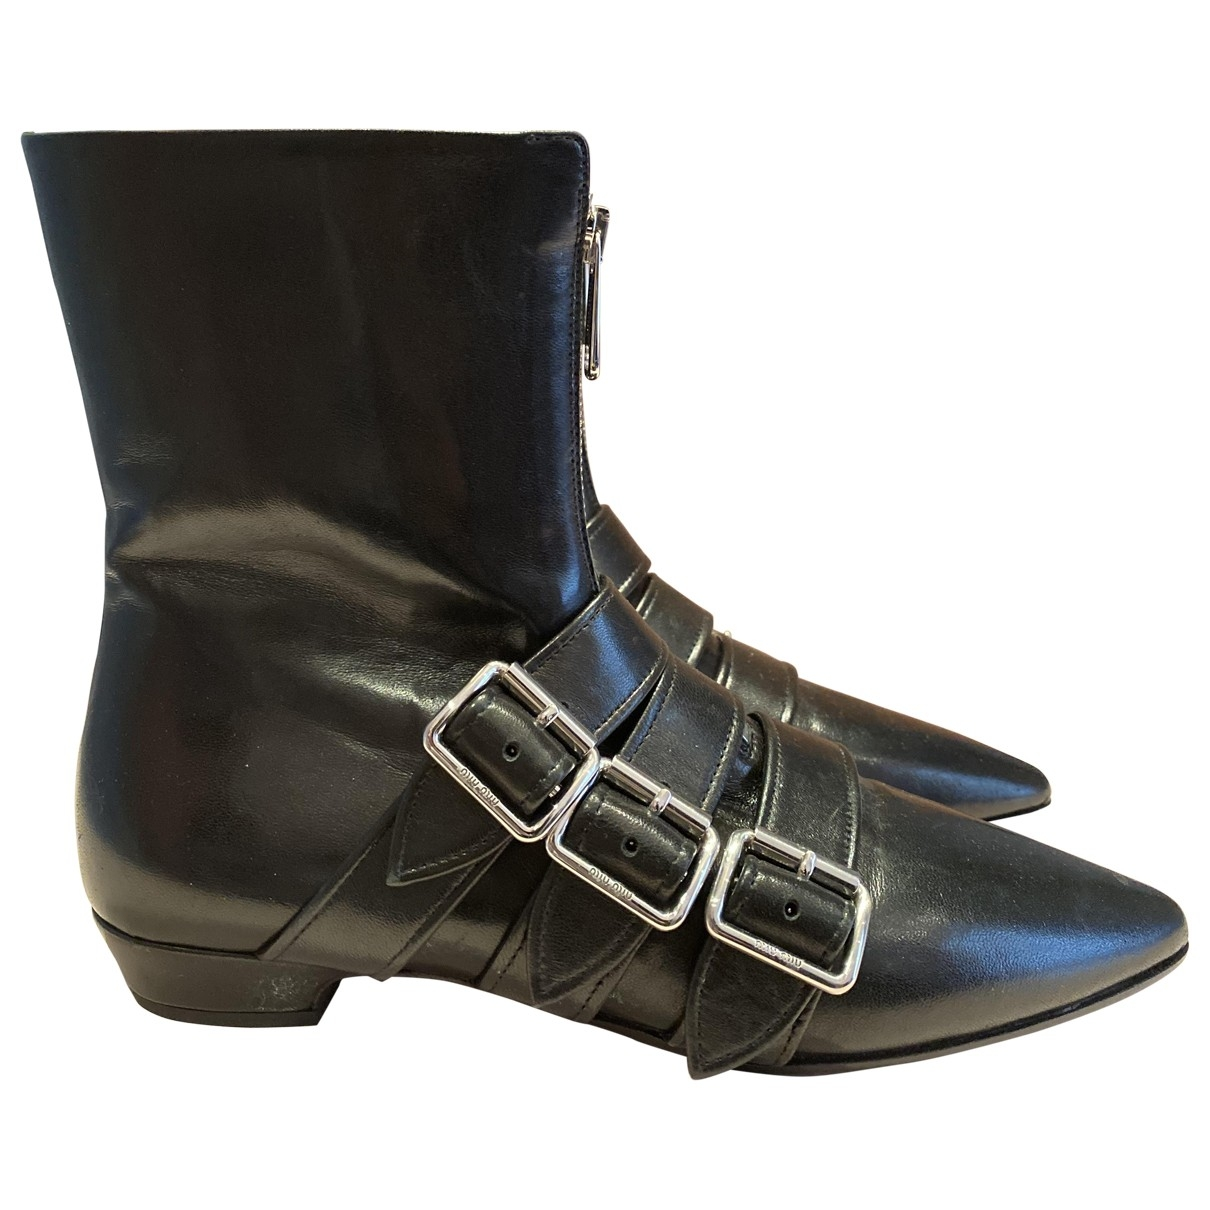 Miu Miu \N Black Leather Ankle boots for Women 37 IT